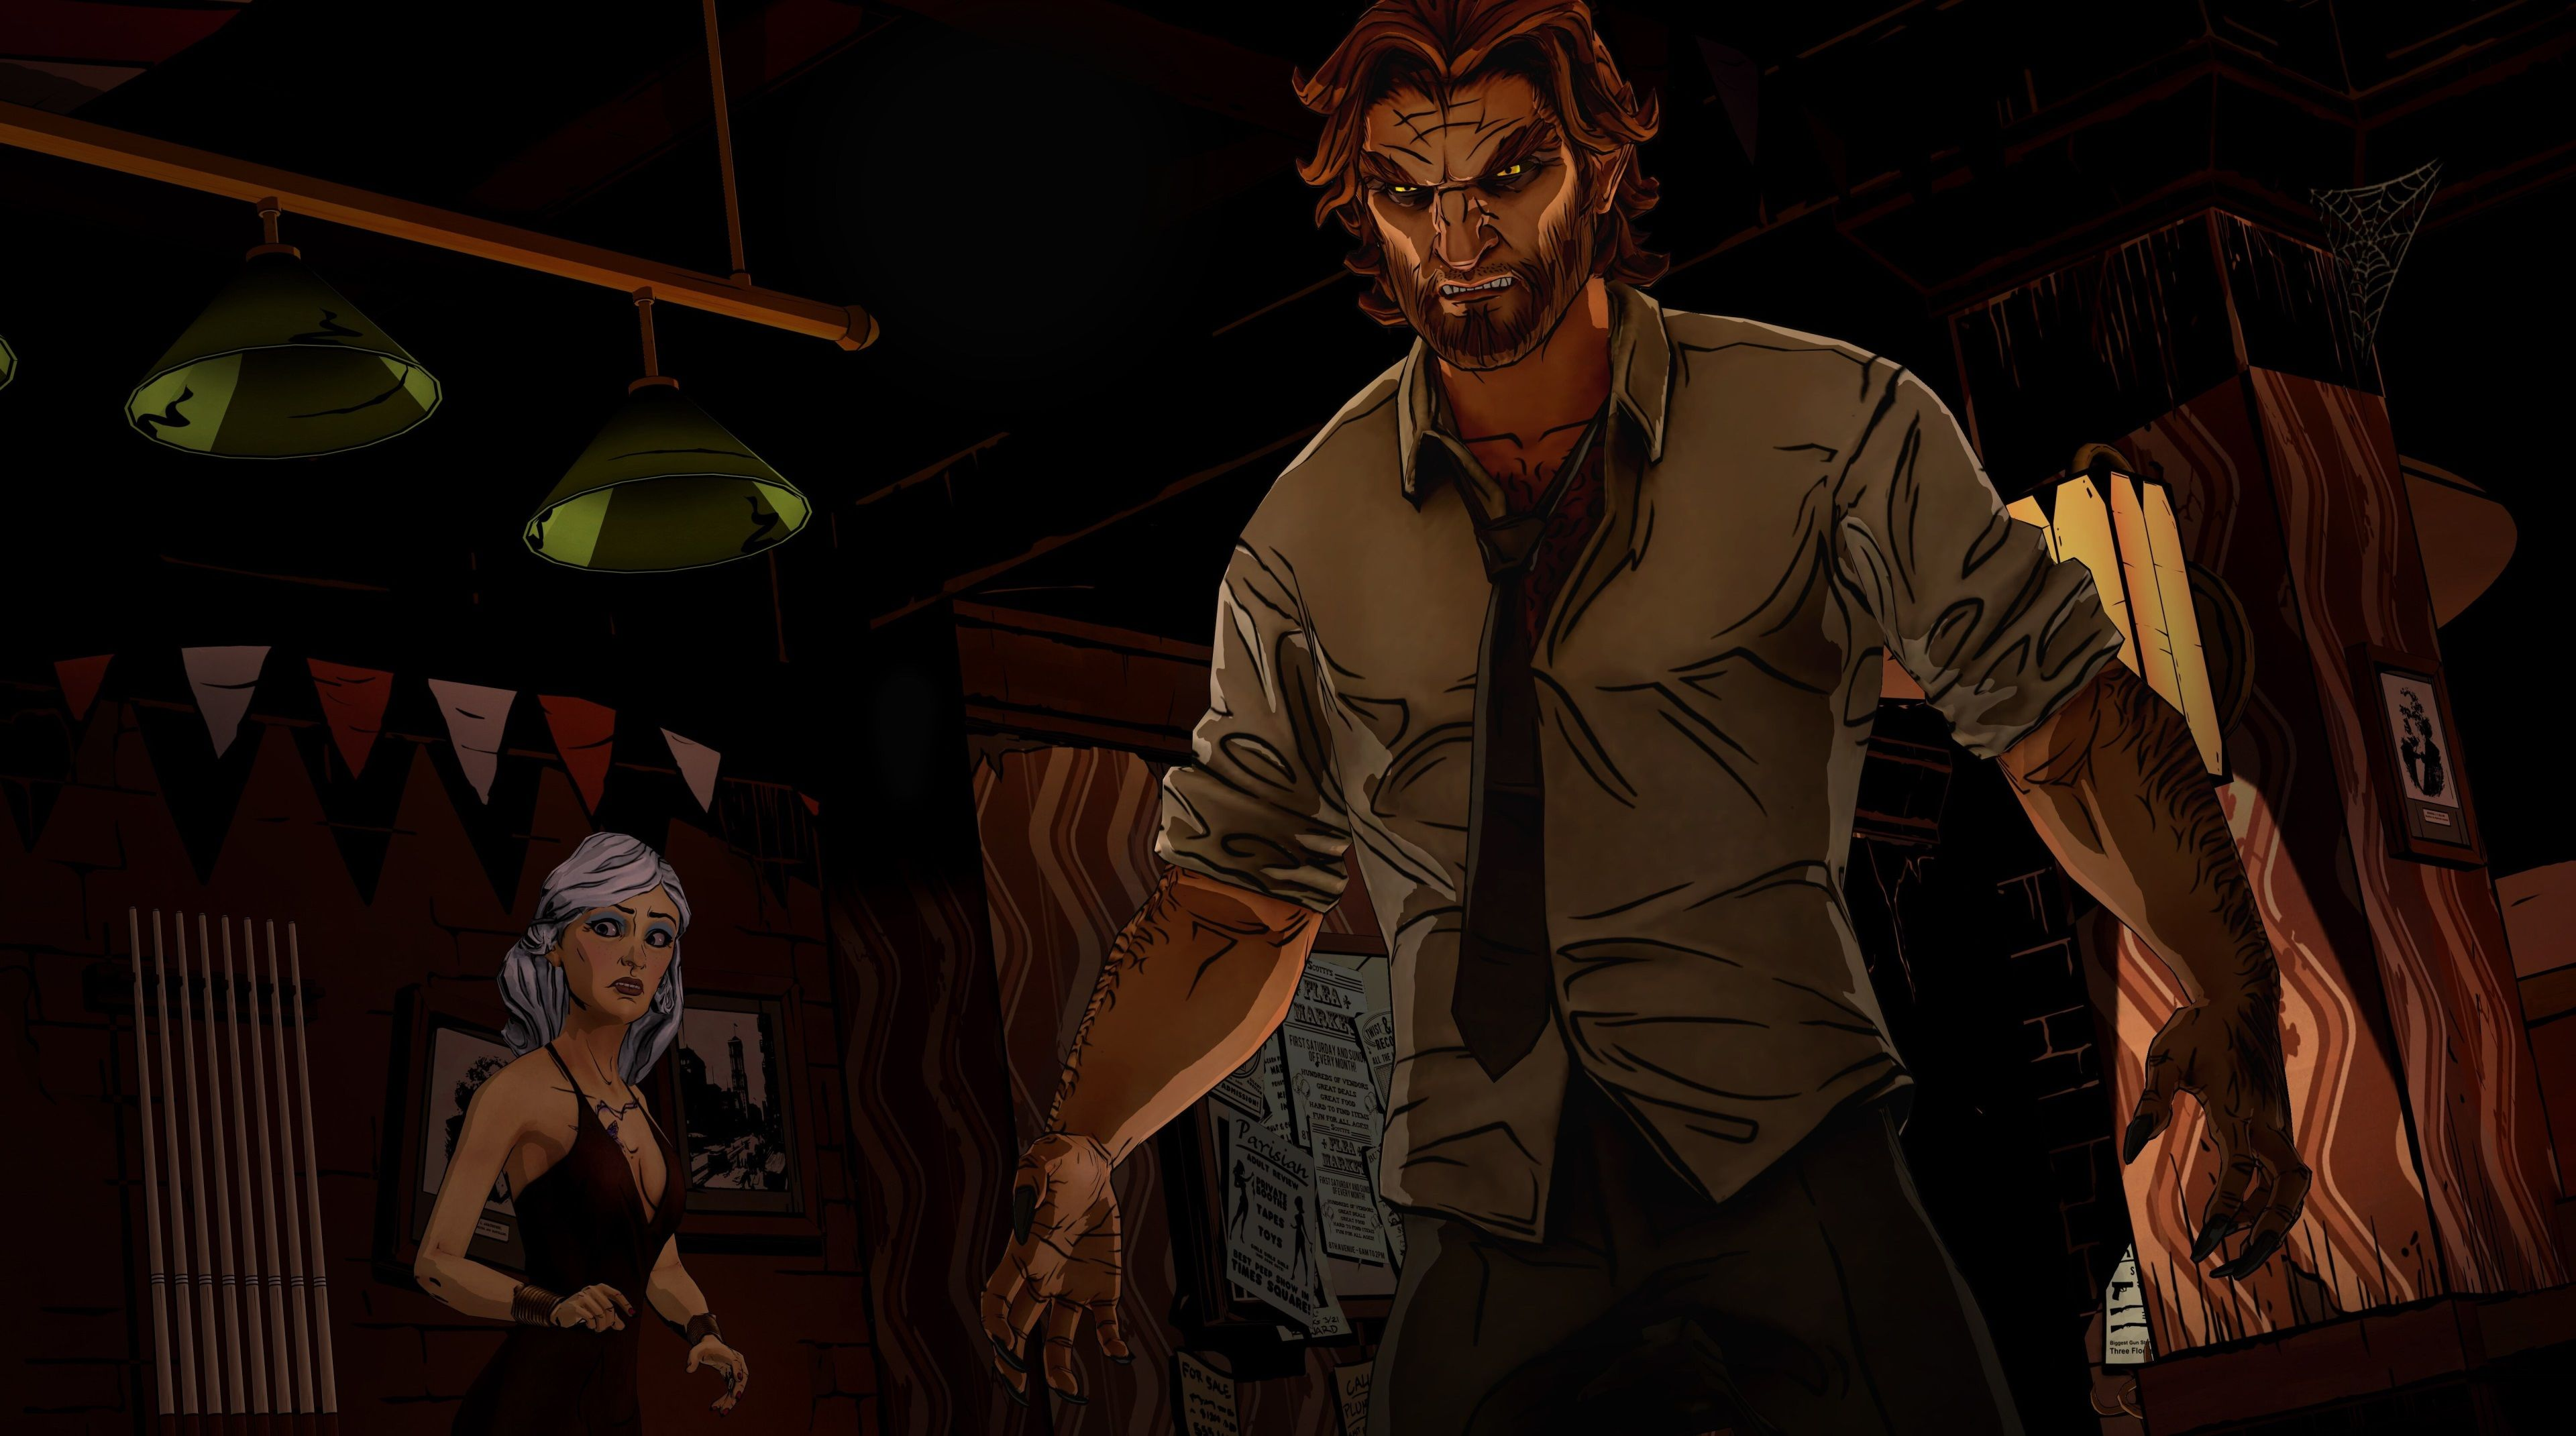 3840x2141 The Wolf Among Us 4k Hd Wallpaper Picture The Wolf Among Us Adventure Games Wolf